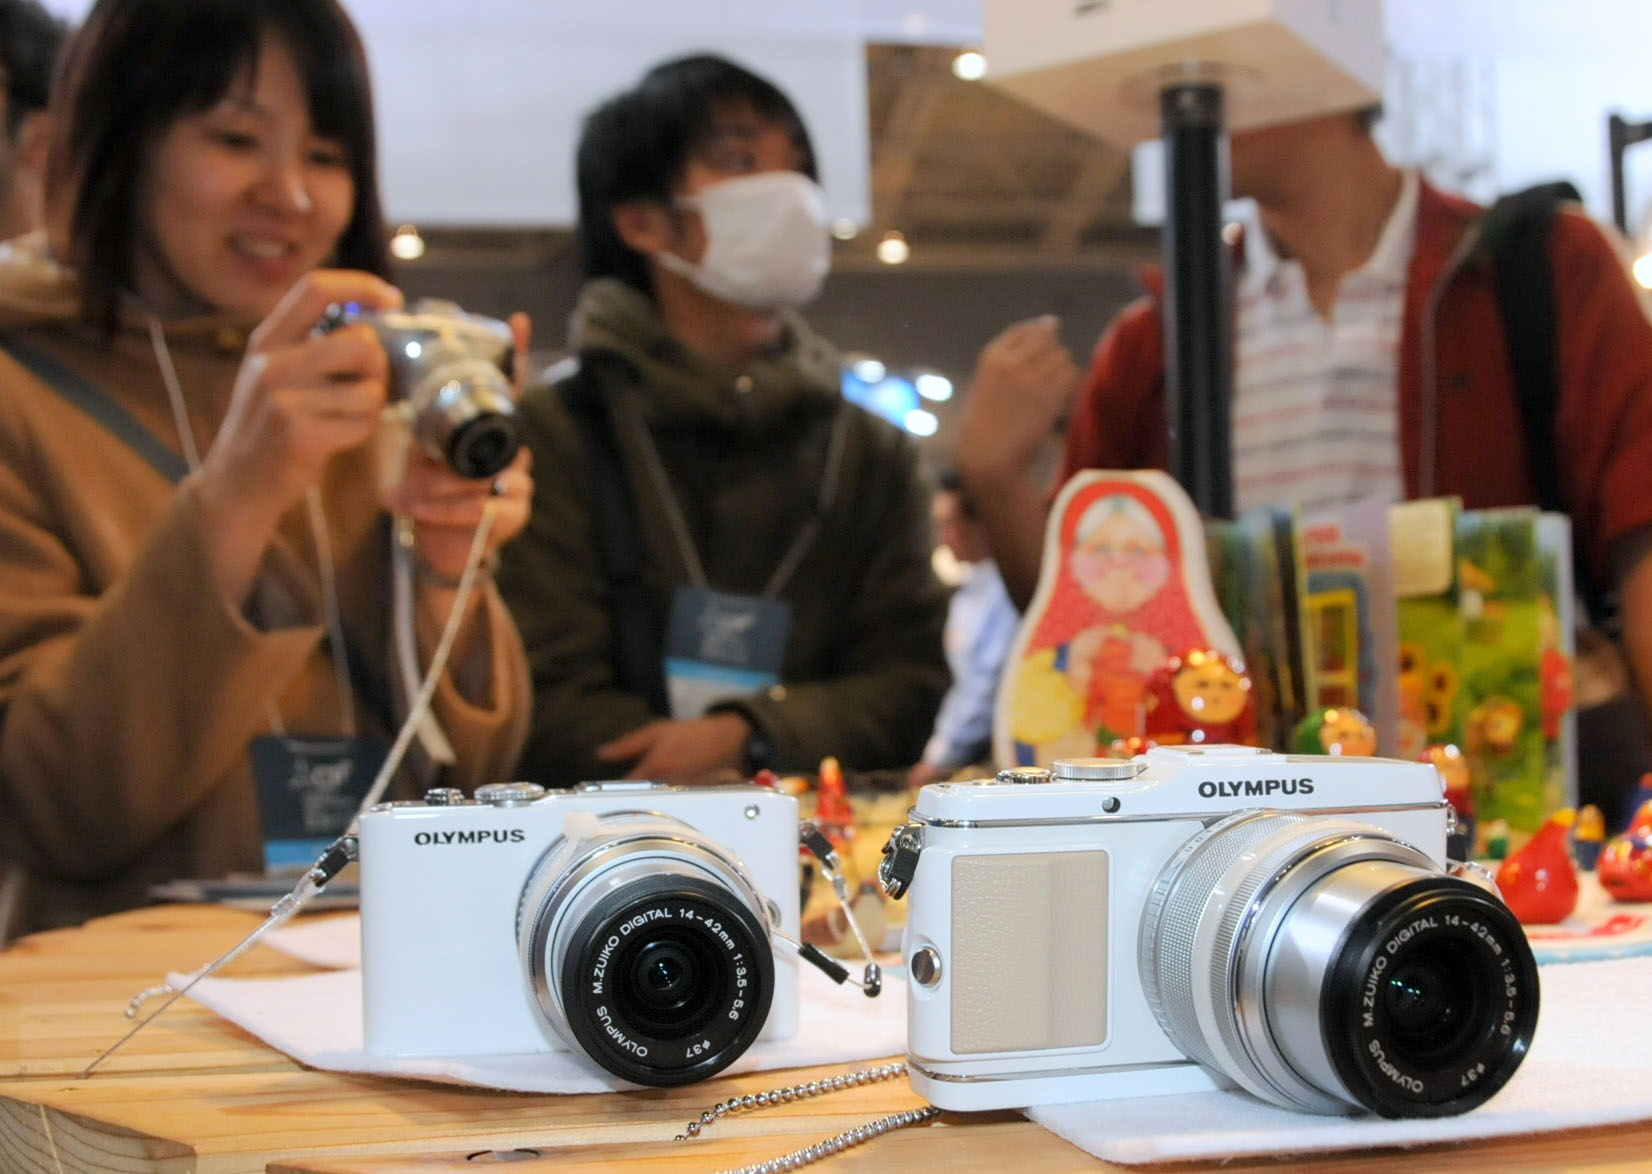 Viewfinder: A visitor tries out an Olympus Corp.'s Pen mirrorless digital camera featuring interchangeable lenses at CP+2012, the country's largest camera show, which kicked off Thursday at Pacifico in Yokohama. | SATOKO KAWASAKI